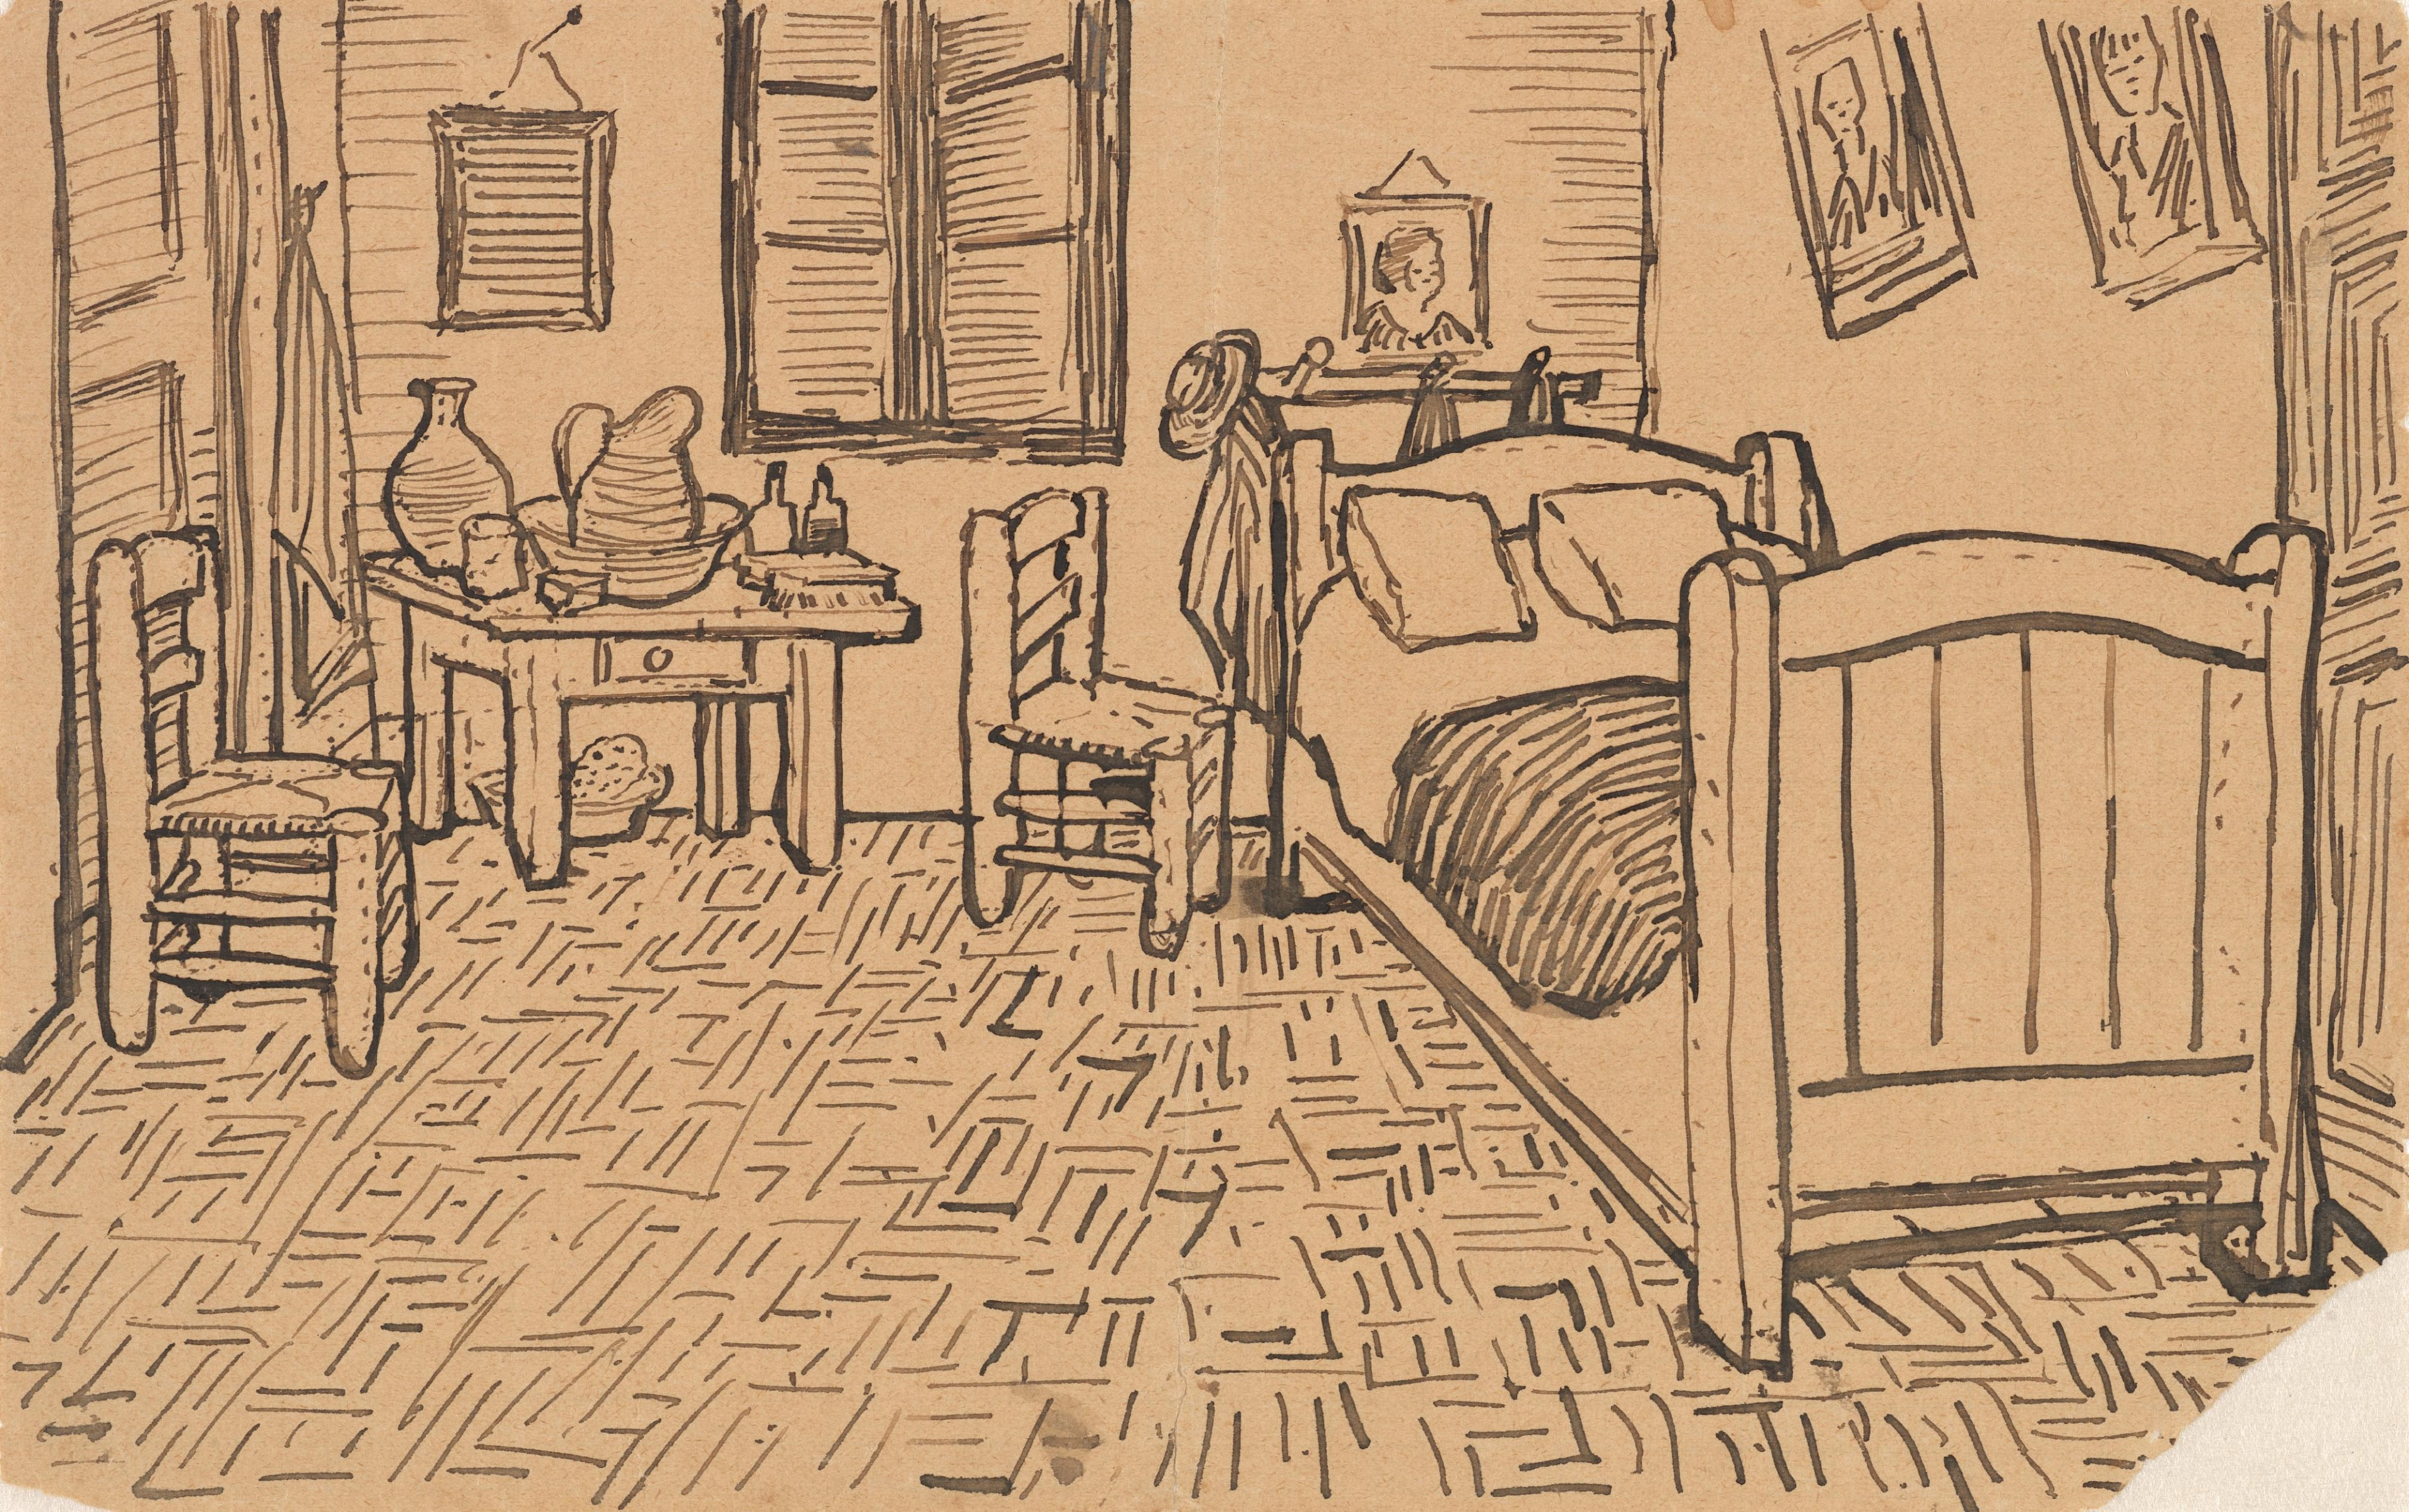 File:Vincent van Gogh - Vincent's Bedroom in Arles - Letter Sketch October 1888.jpg